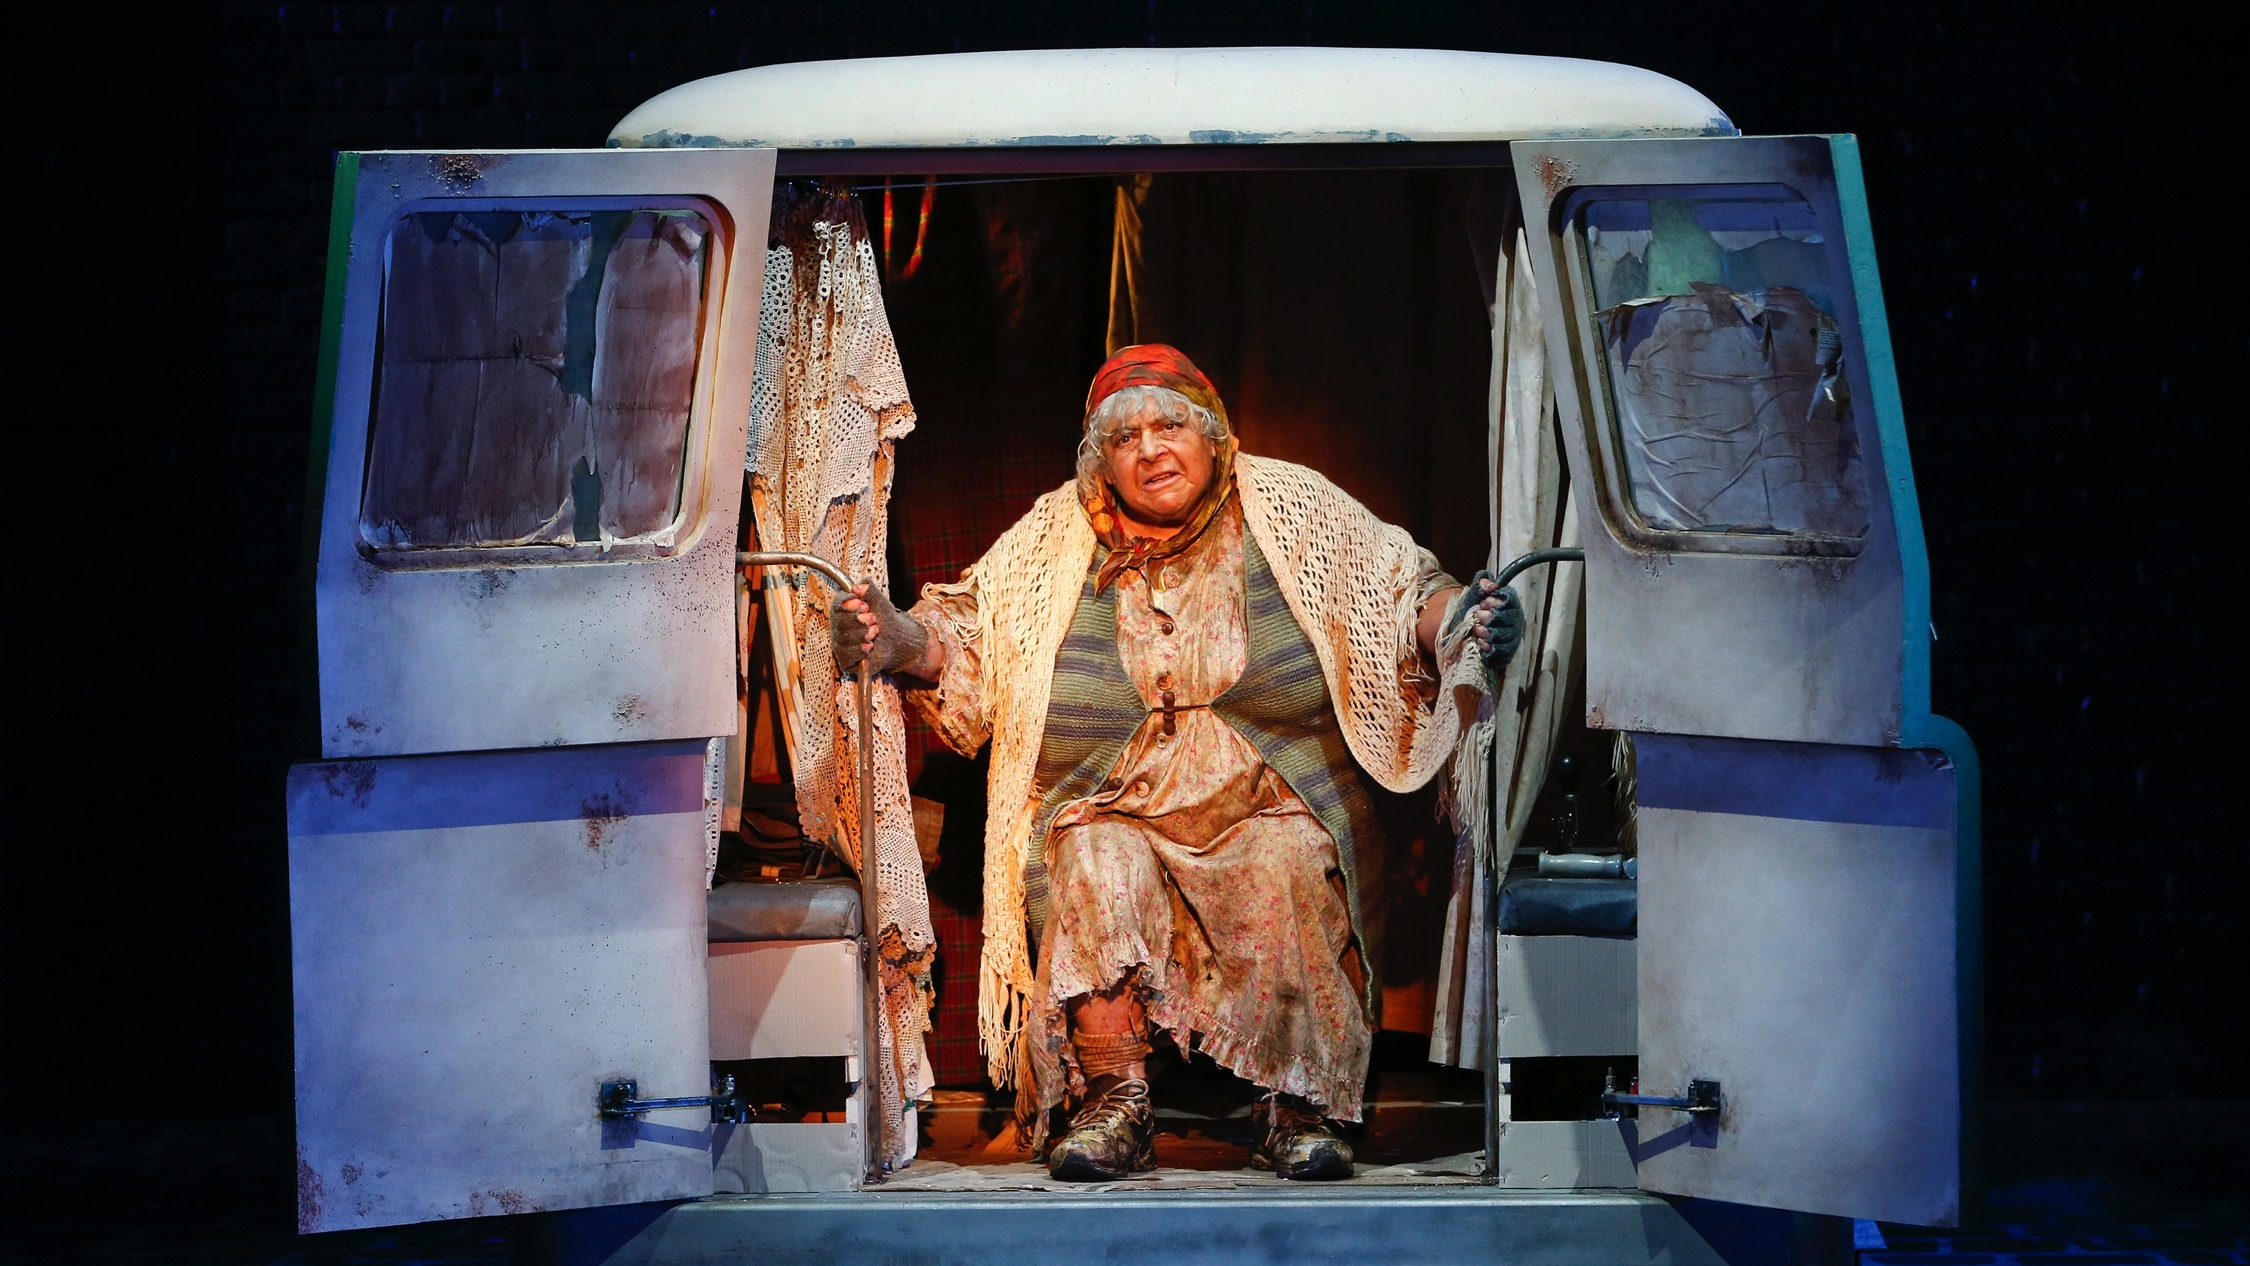 Production shot at The Lady in the Van